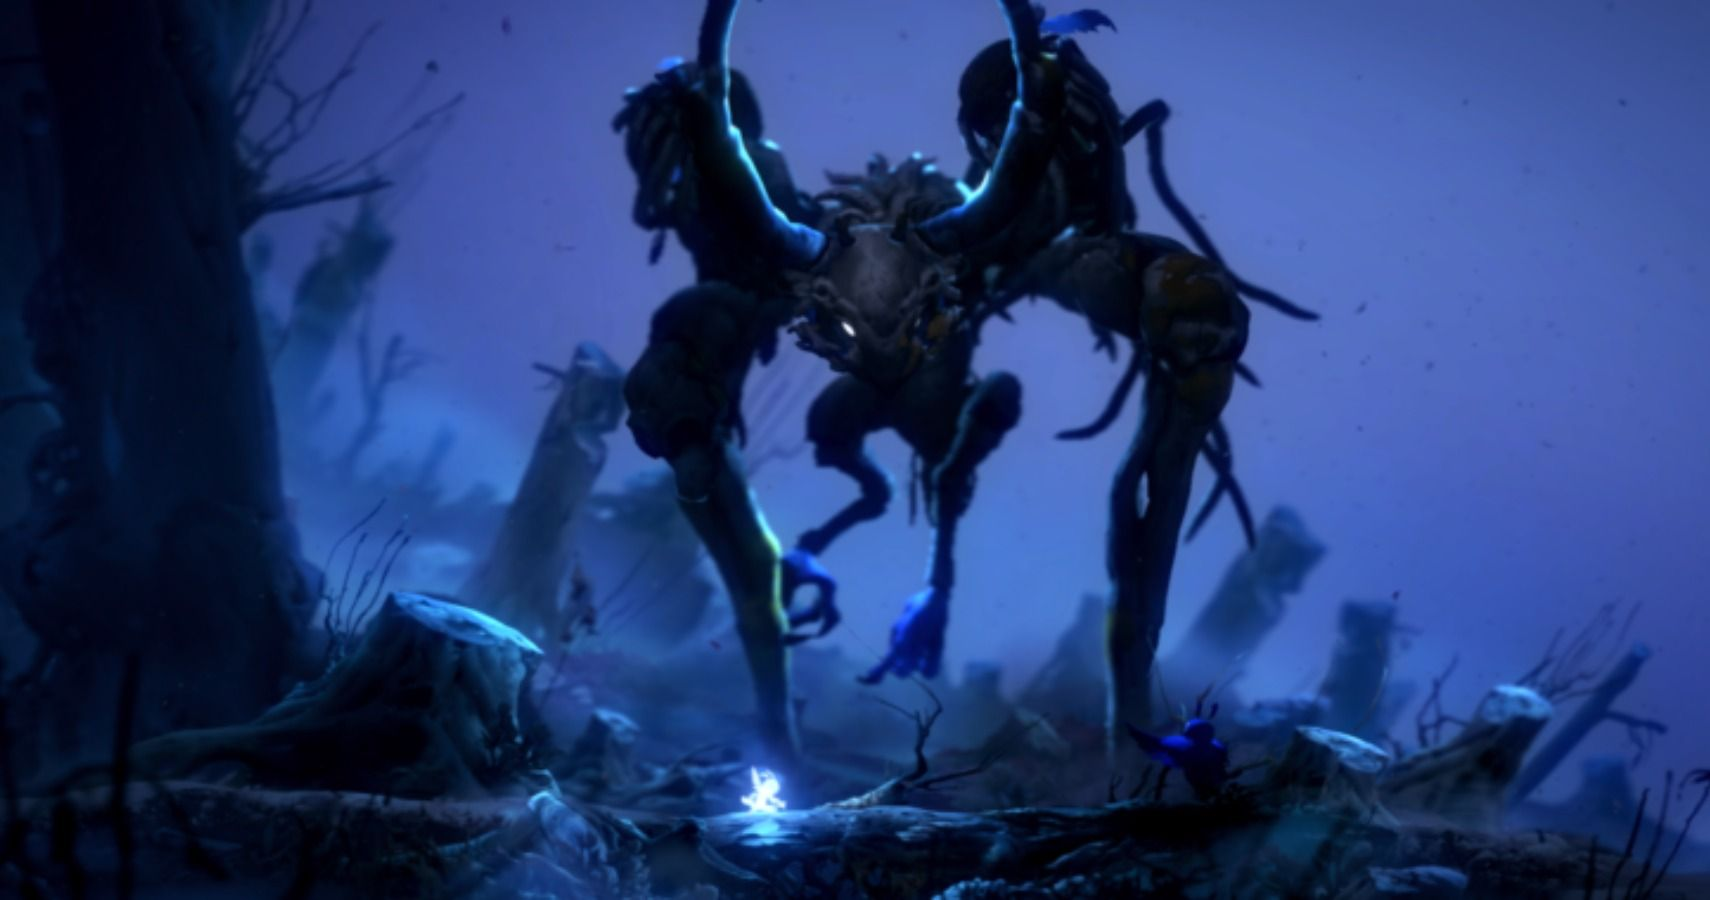 How Final Fantasy Inspired Ori And The Will Of The Wisps